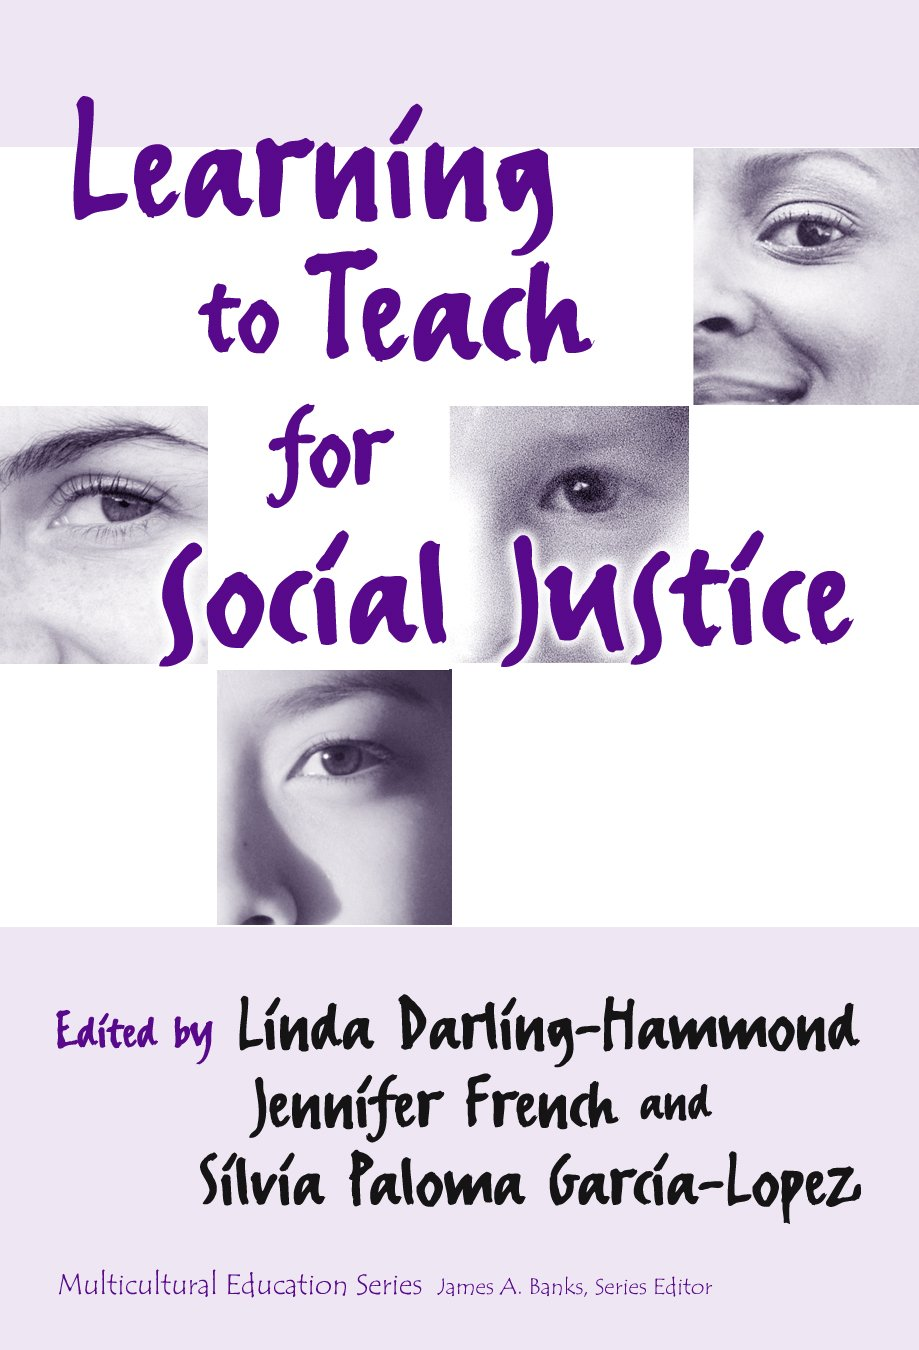 Learning to Teach for Social Justice (Multicultural Education) Jennifer French, Silvia Garcia-Lopez and Linda Darling-Hammond